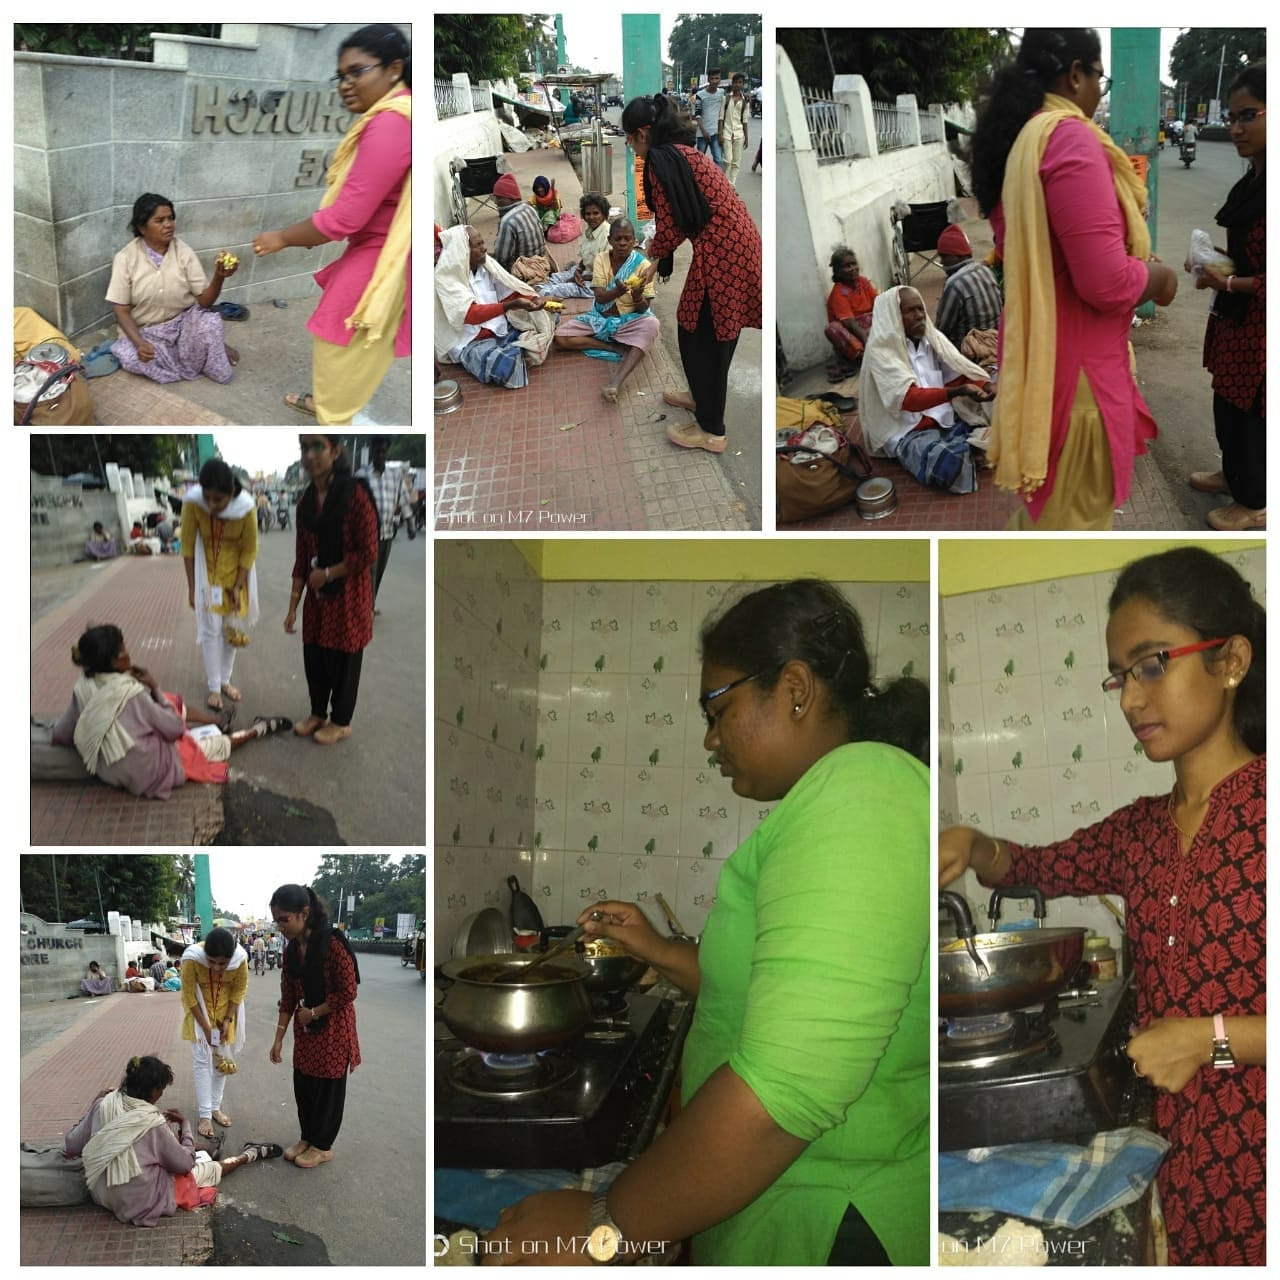 Jagriks from the Audacious Dreams Foundation preparing and serving food to the underprivileged in and around Vellore